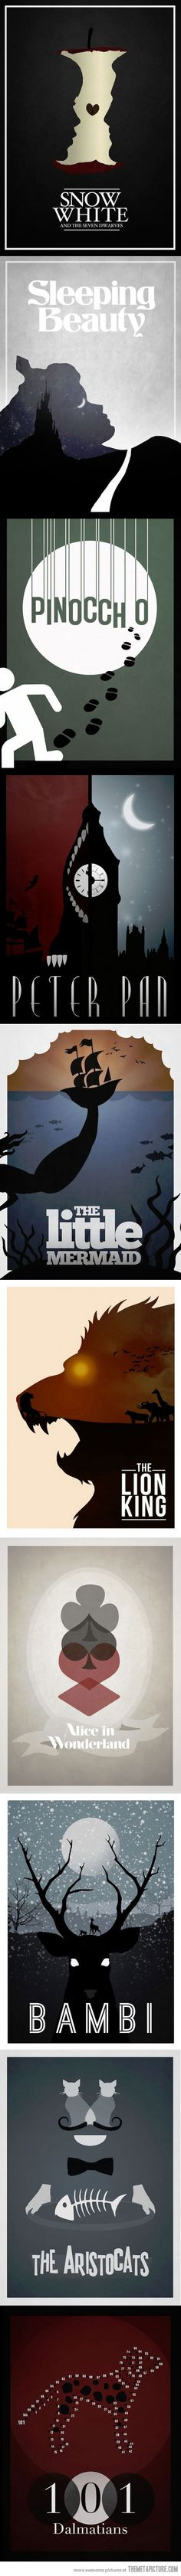 funny minimalist posters Disney movies on imgfave